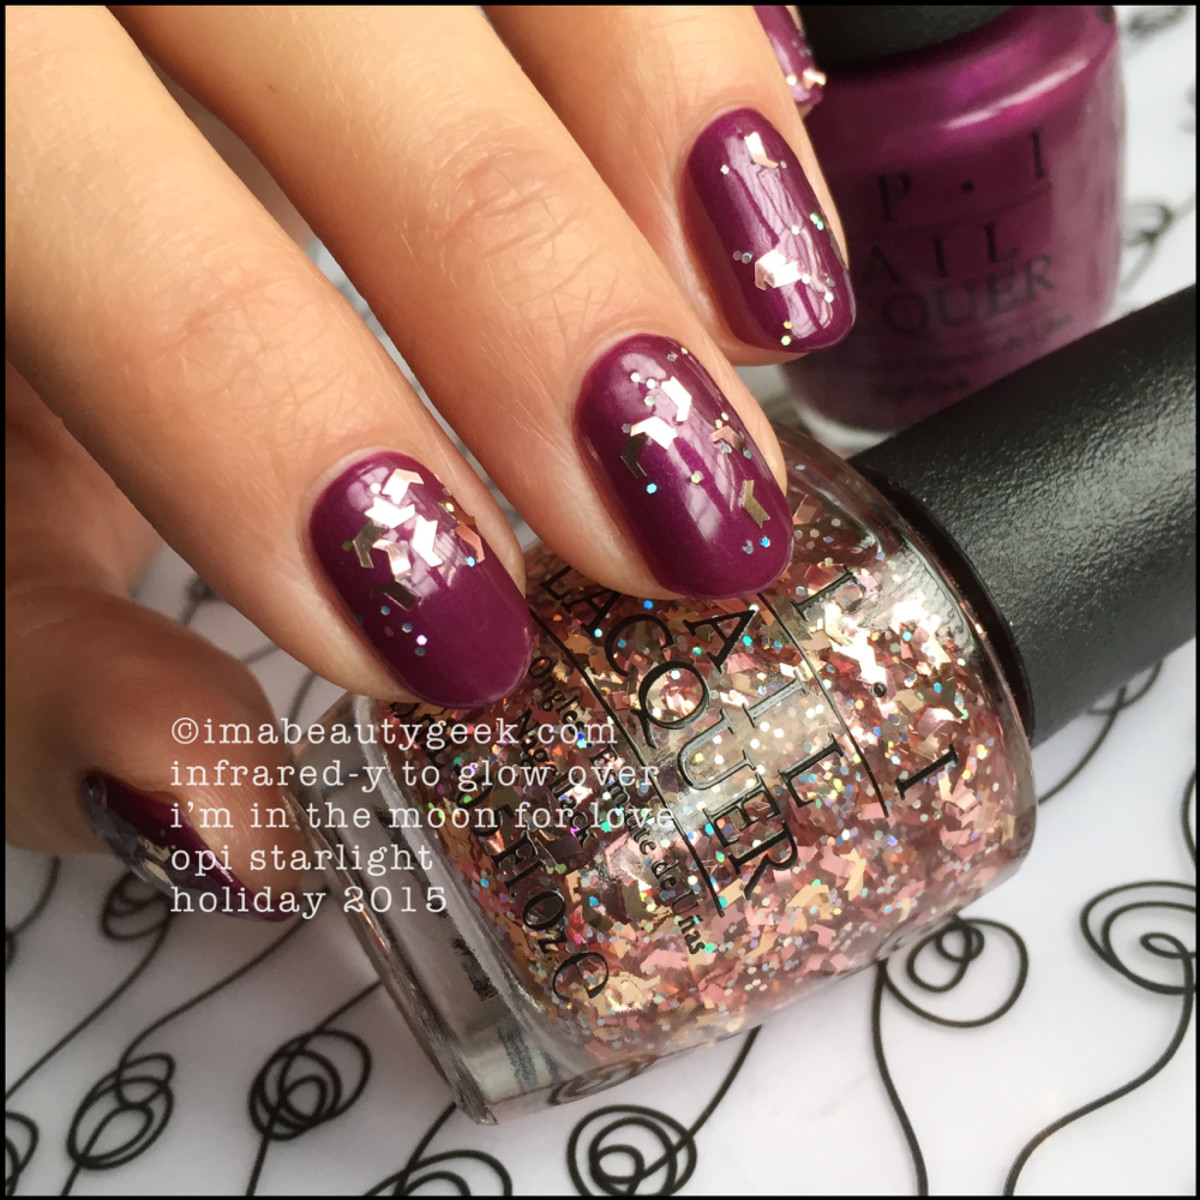 OPI Infrared-y To Glow_OPI Starlight Swatches Holiday 2015